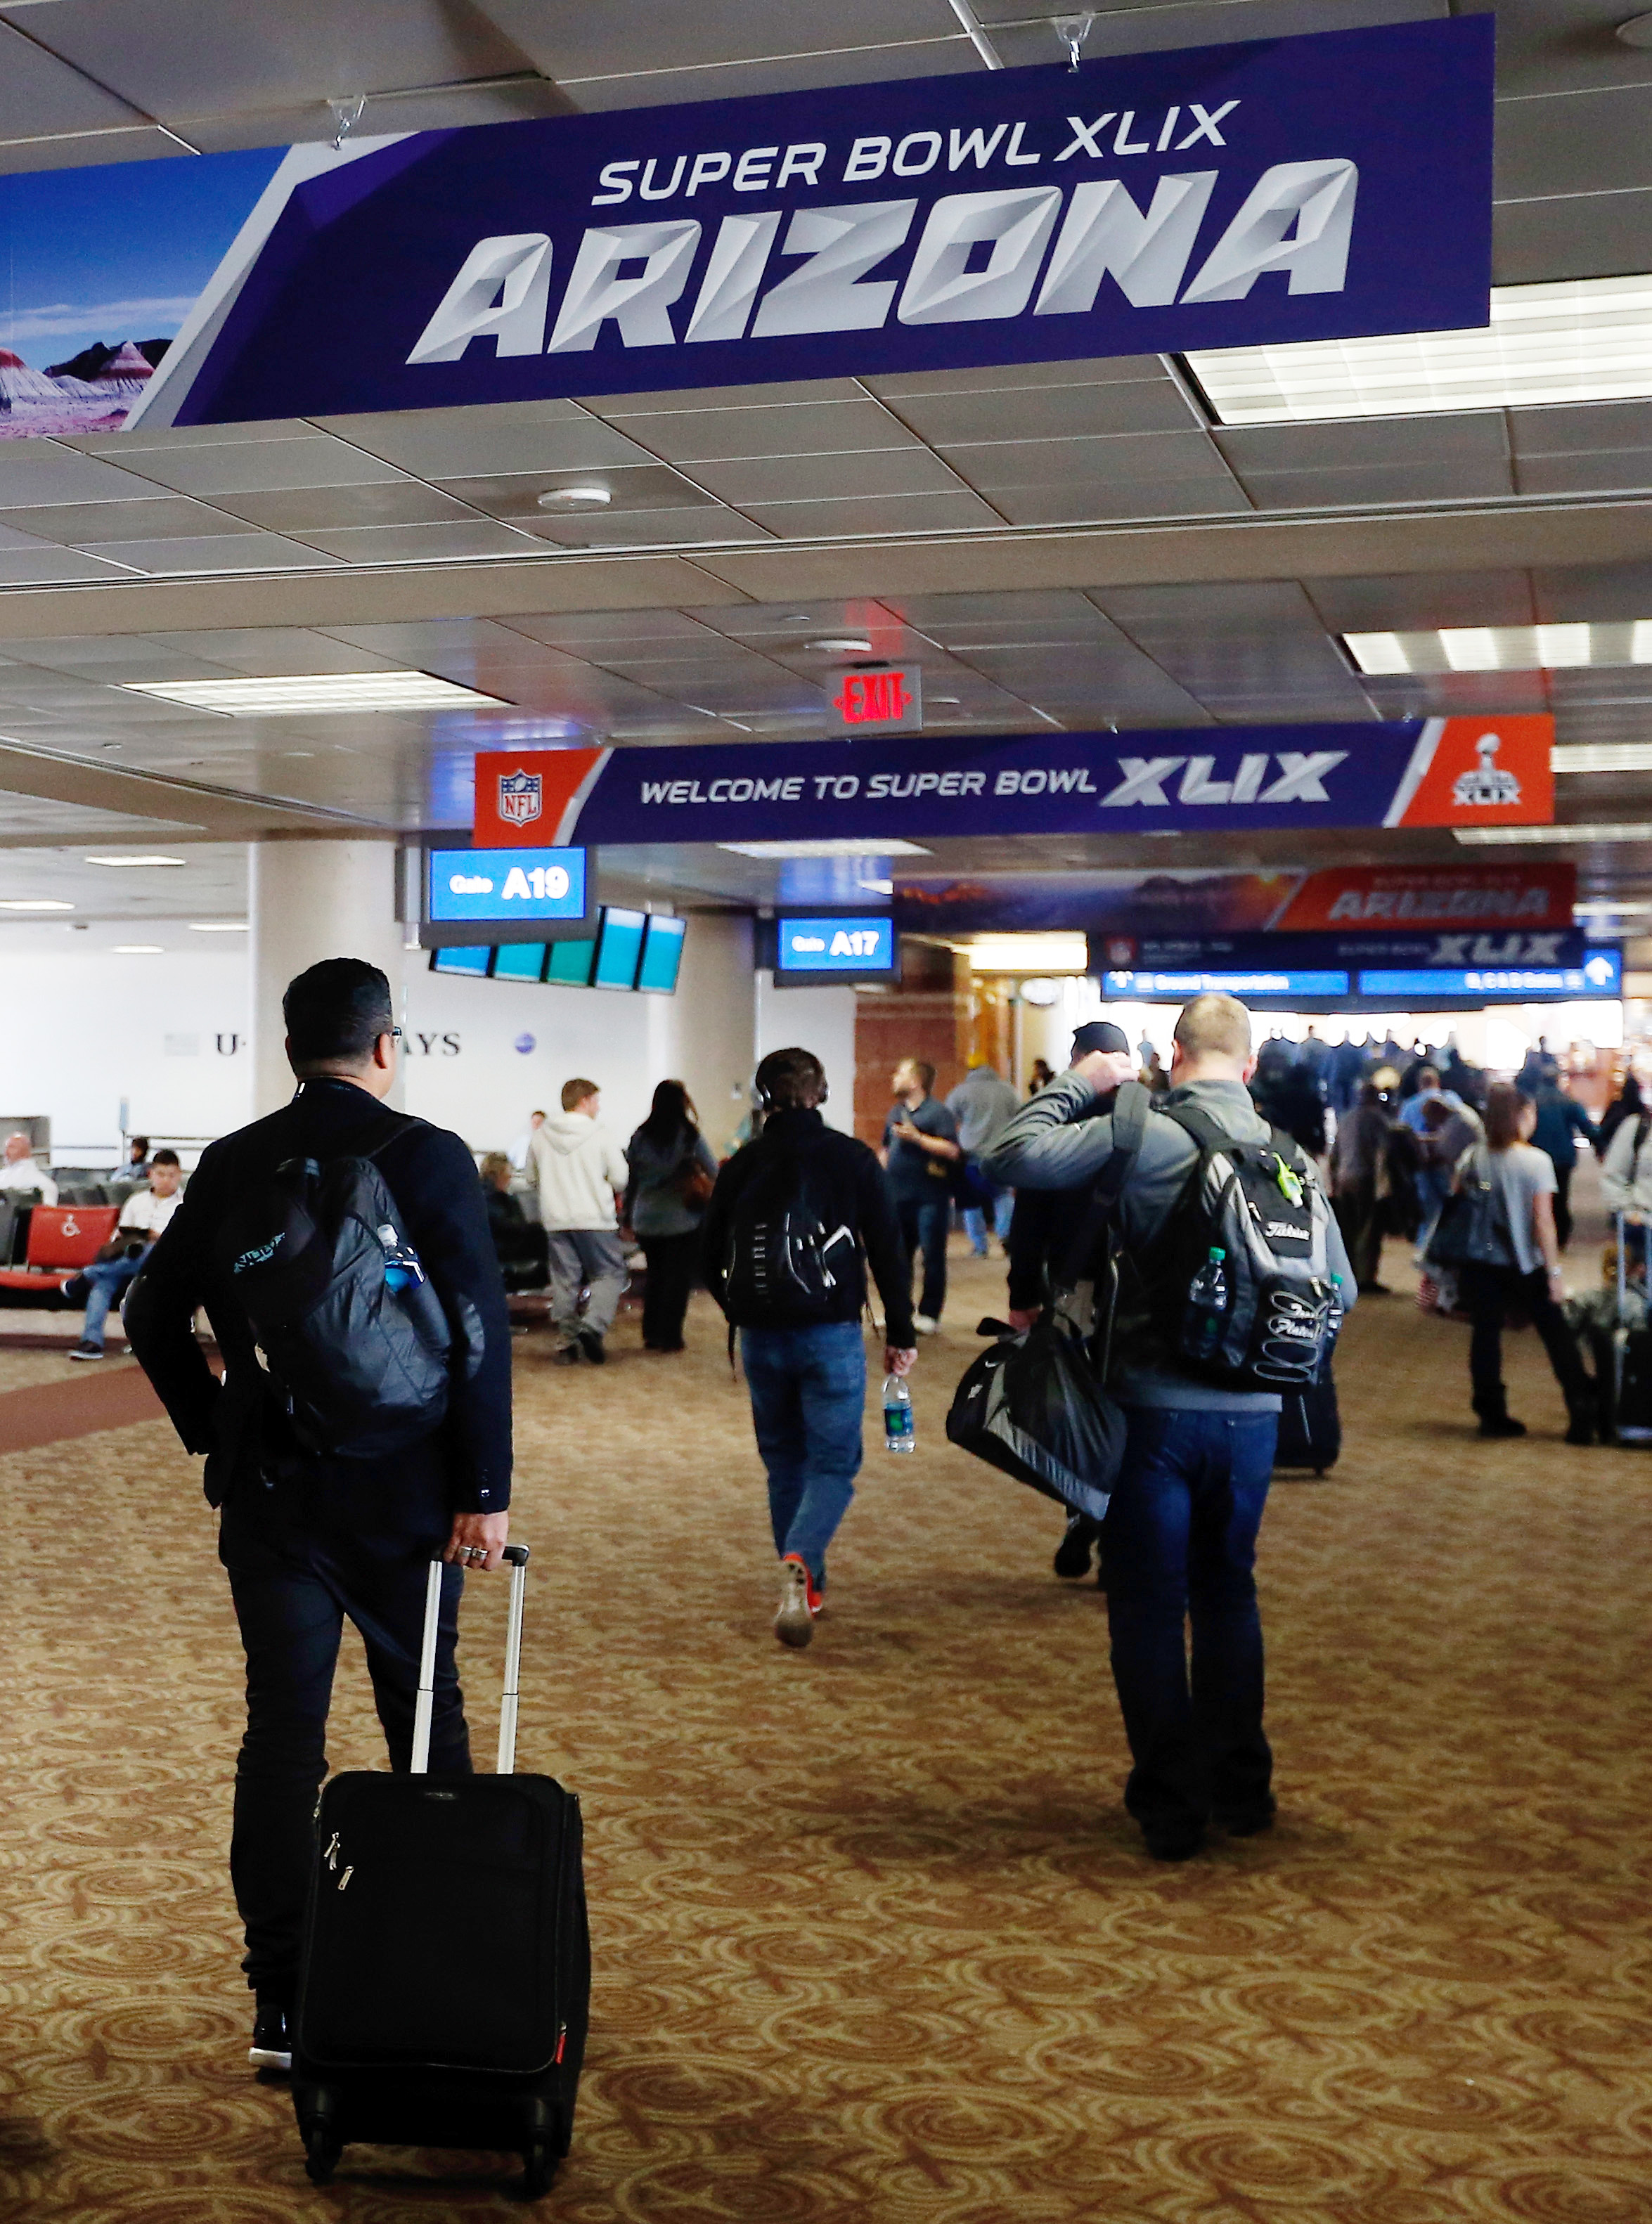 Travelers are already being greeted by Super Bowl XLIX logos at Phoenix Sky Harbor International Airport.